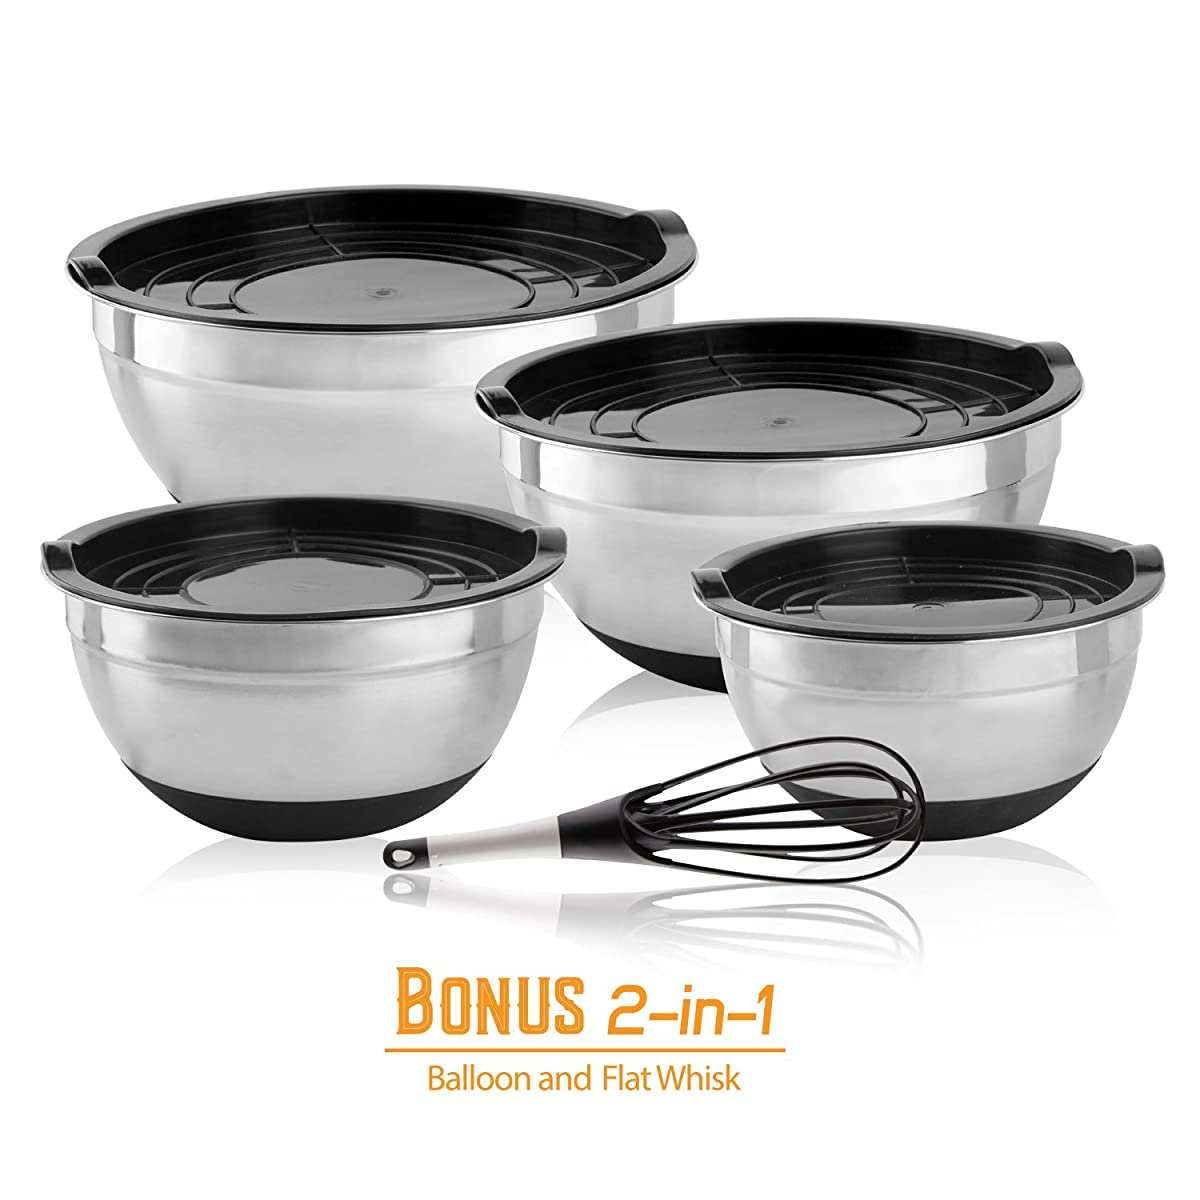 Golden Chef - Stainless Steel Mixing Bowl Set With Tight-Fitting Lids & Silicone Bottom With Bonus Whisk Nesting Metal Serving Bowls Ideal for Kitchen, Camping, And Food Storage